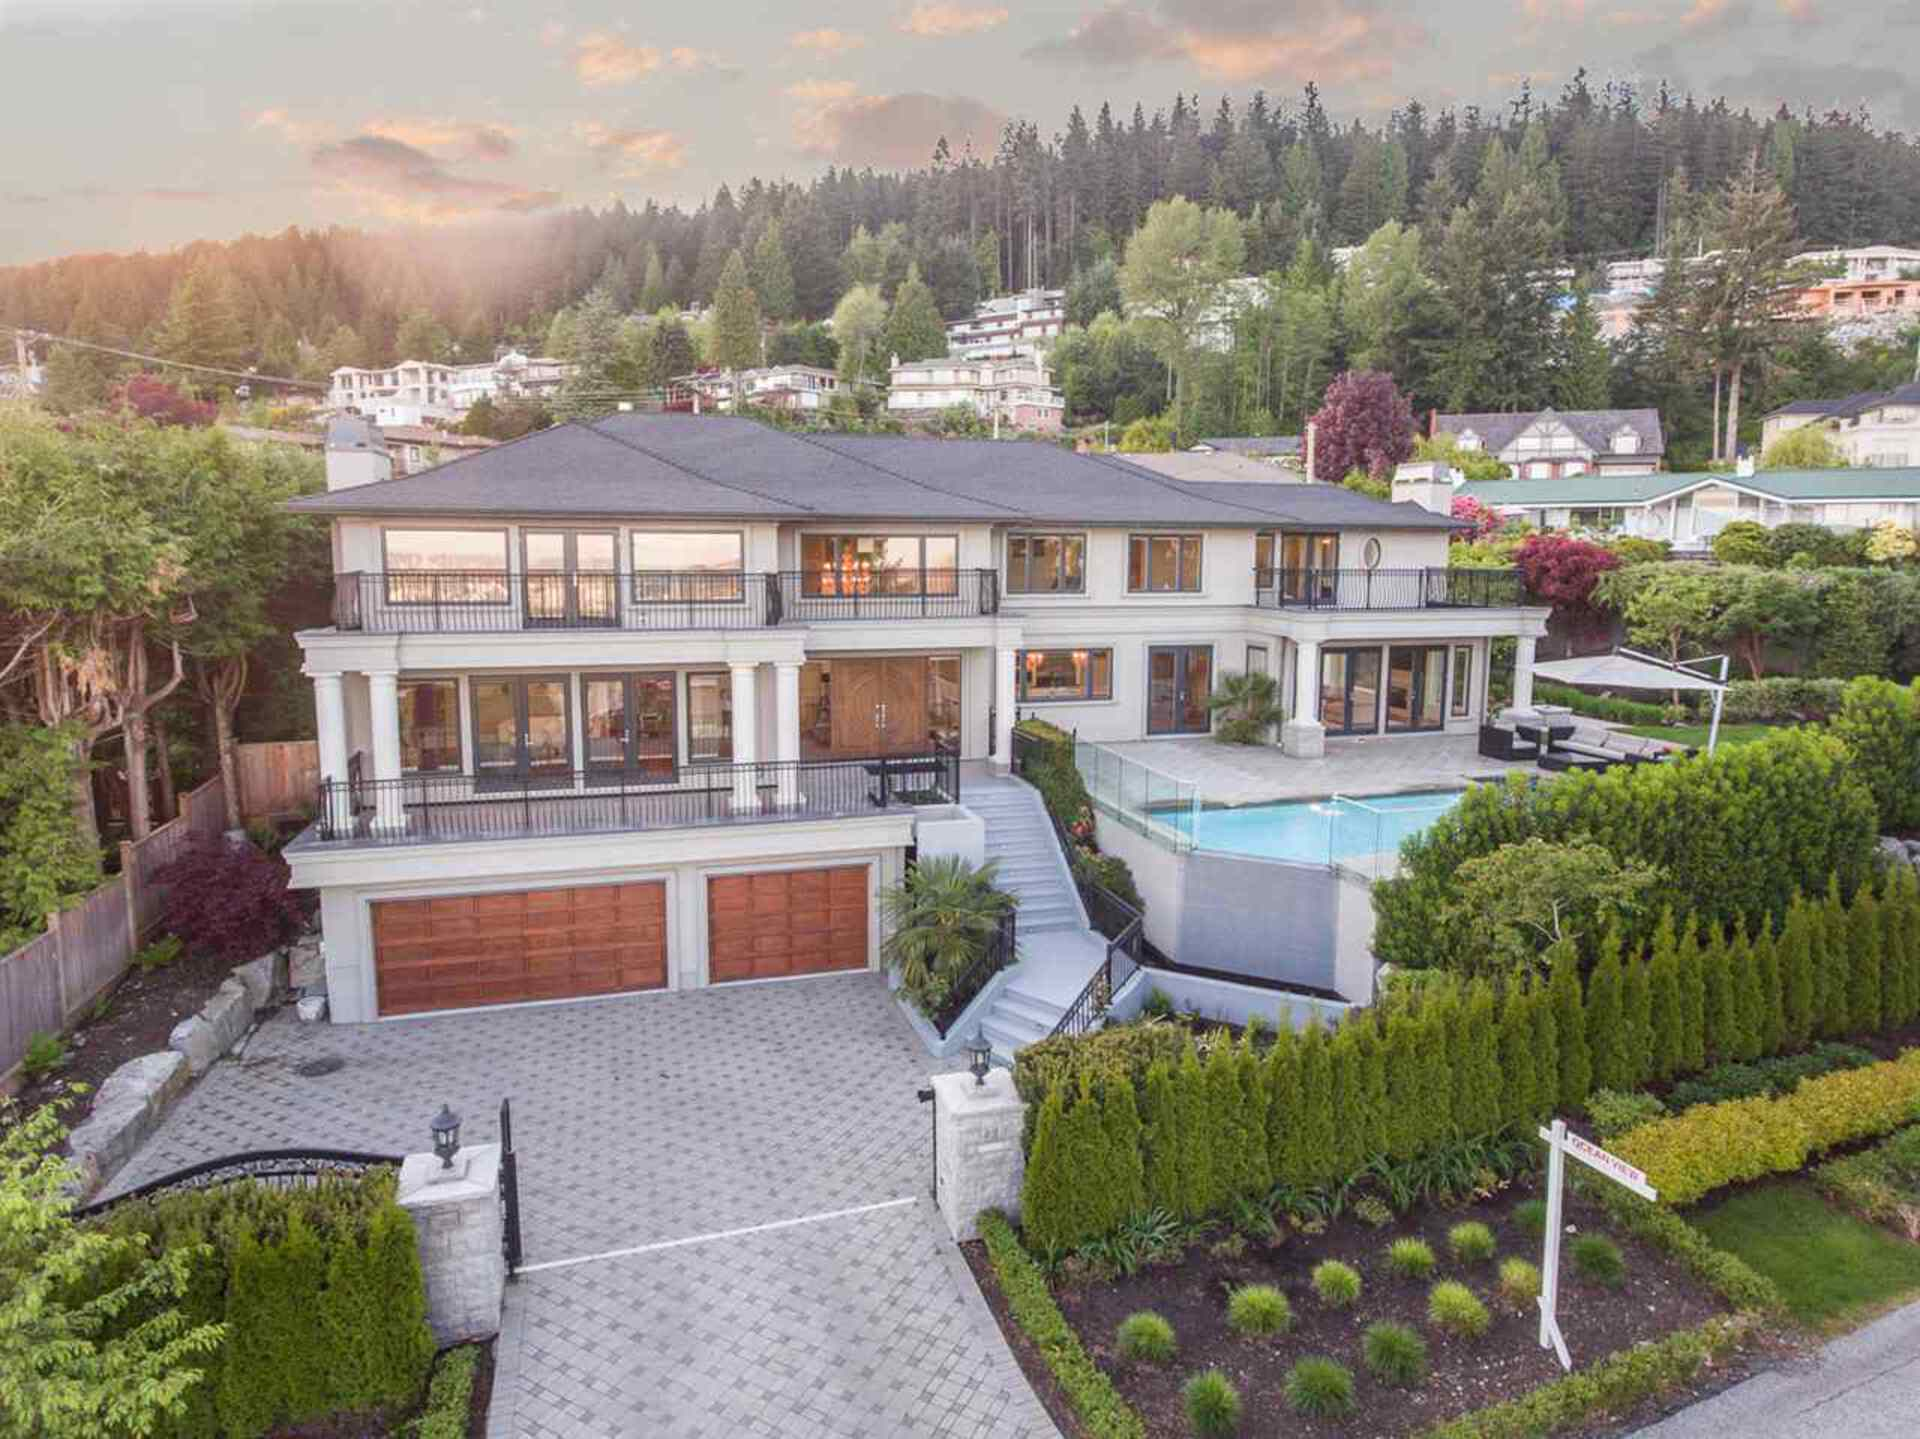 1097-hillside-road-british-properties-west-vancouver-38 at 1097 Hillside Road, British Properties, West Vancouver